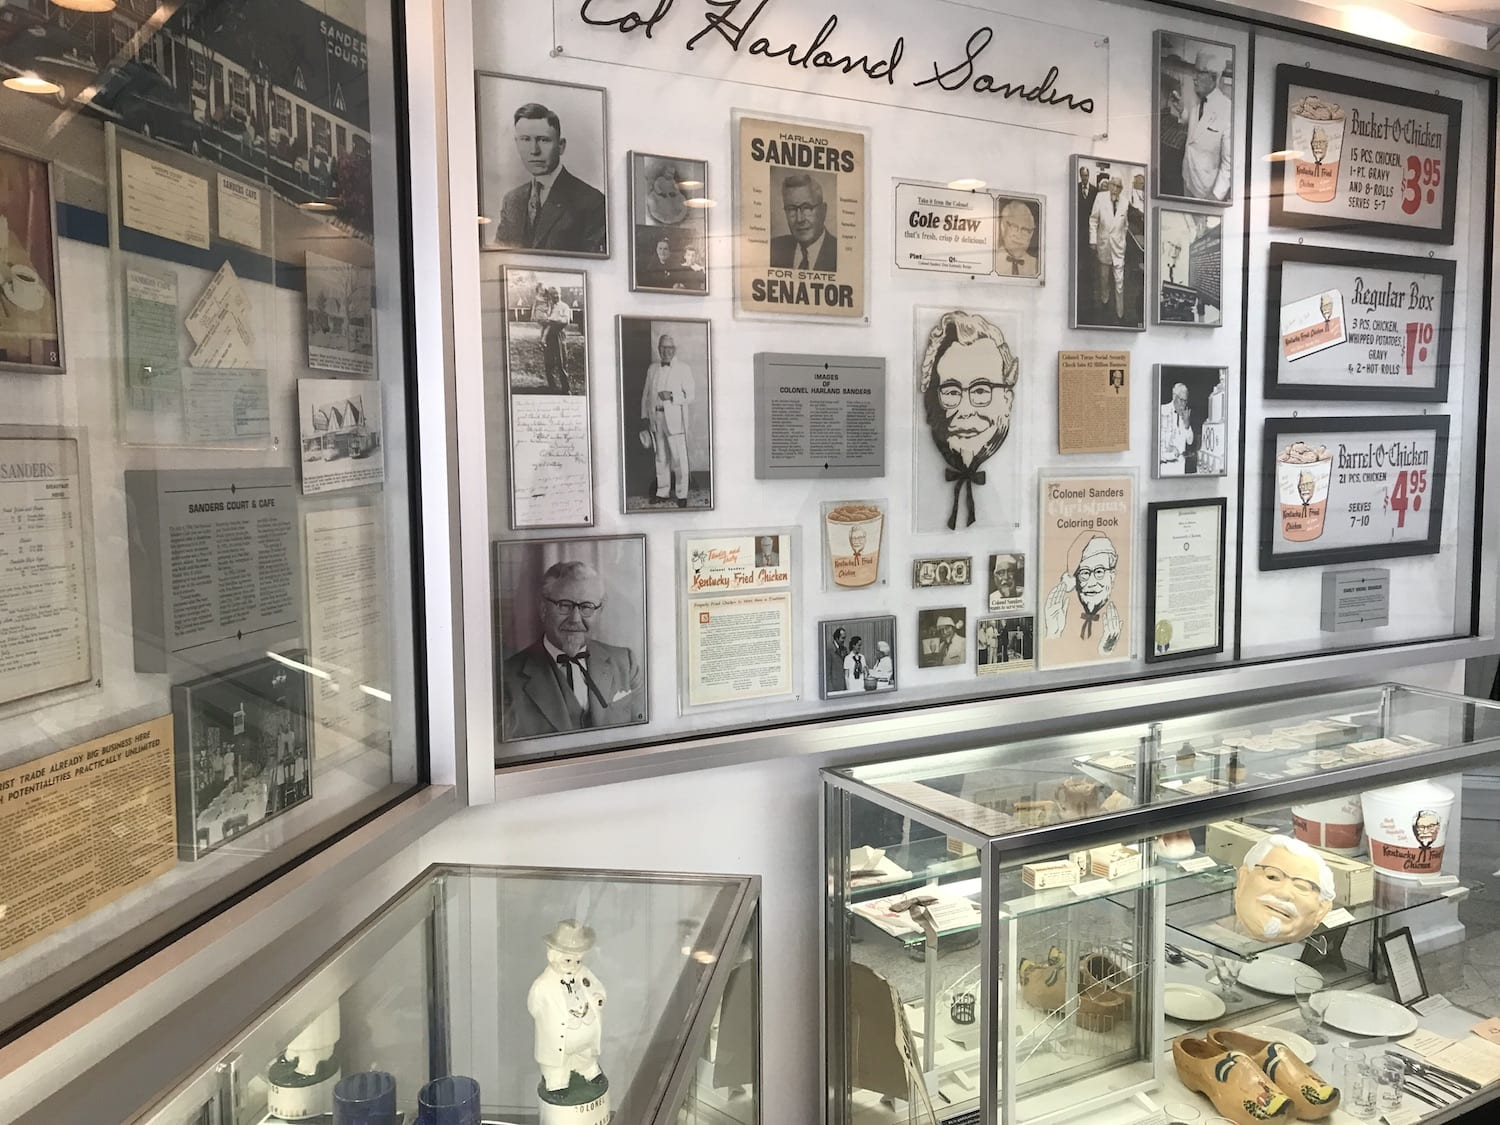 Sanders Cafe Memorabilia and Exhibits